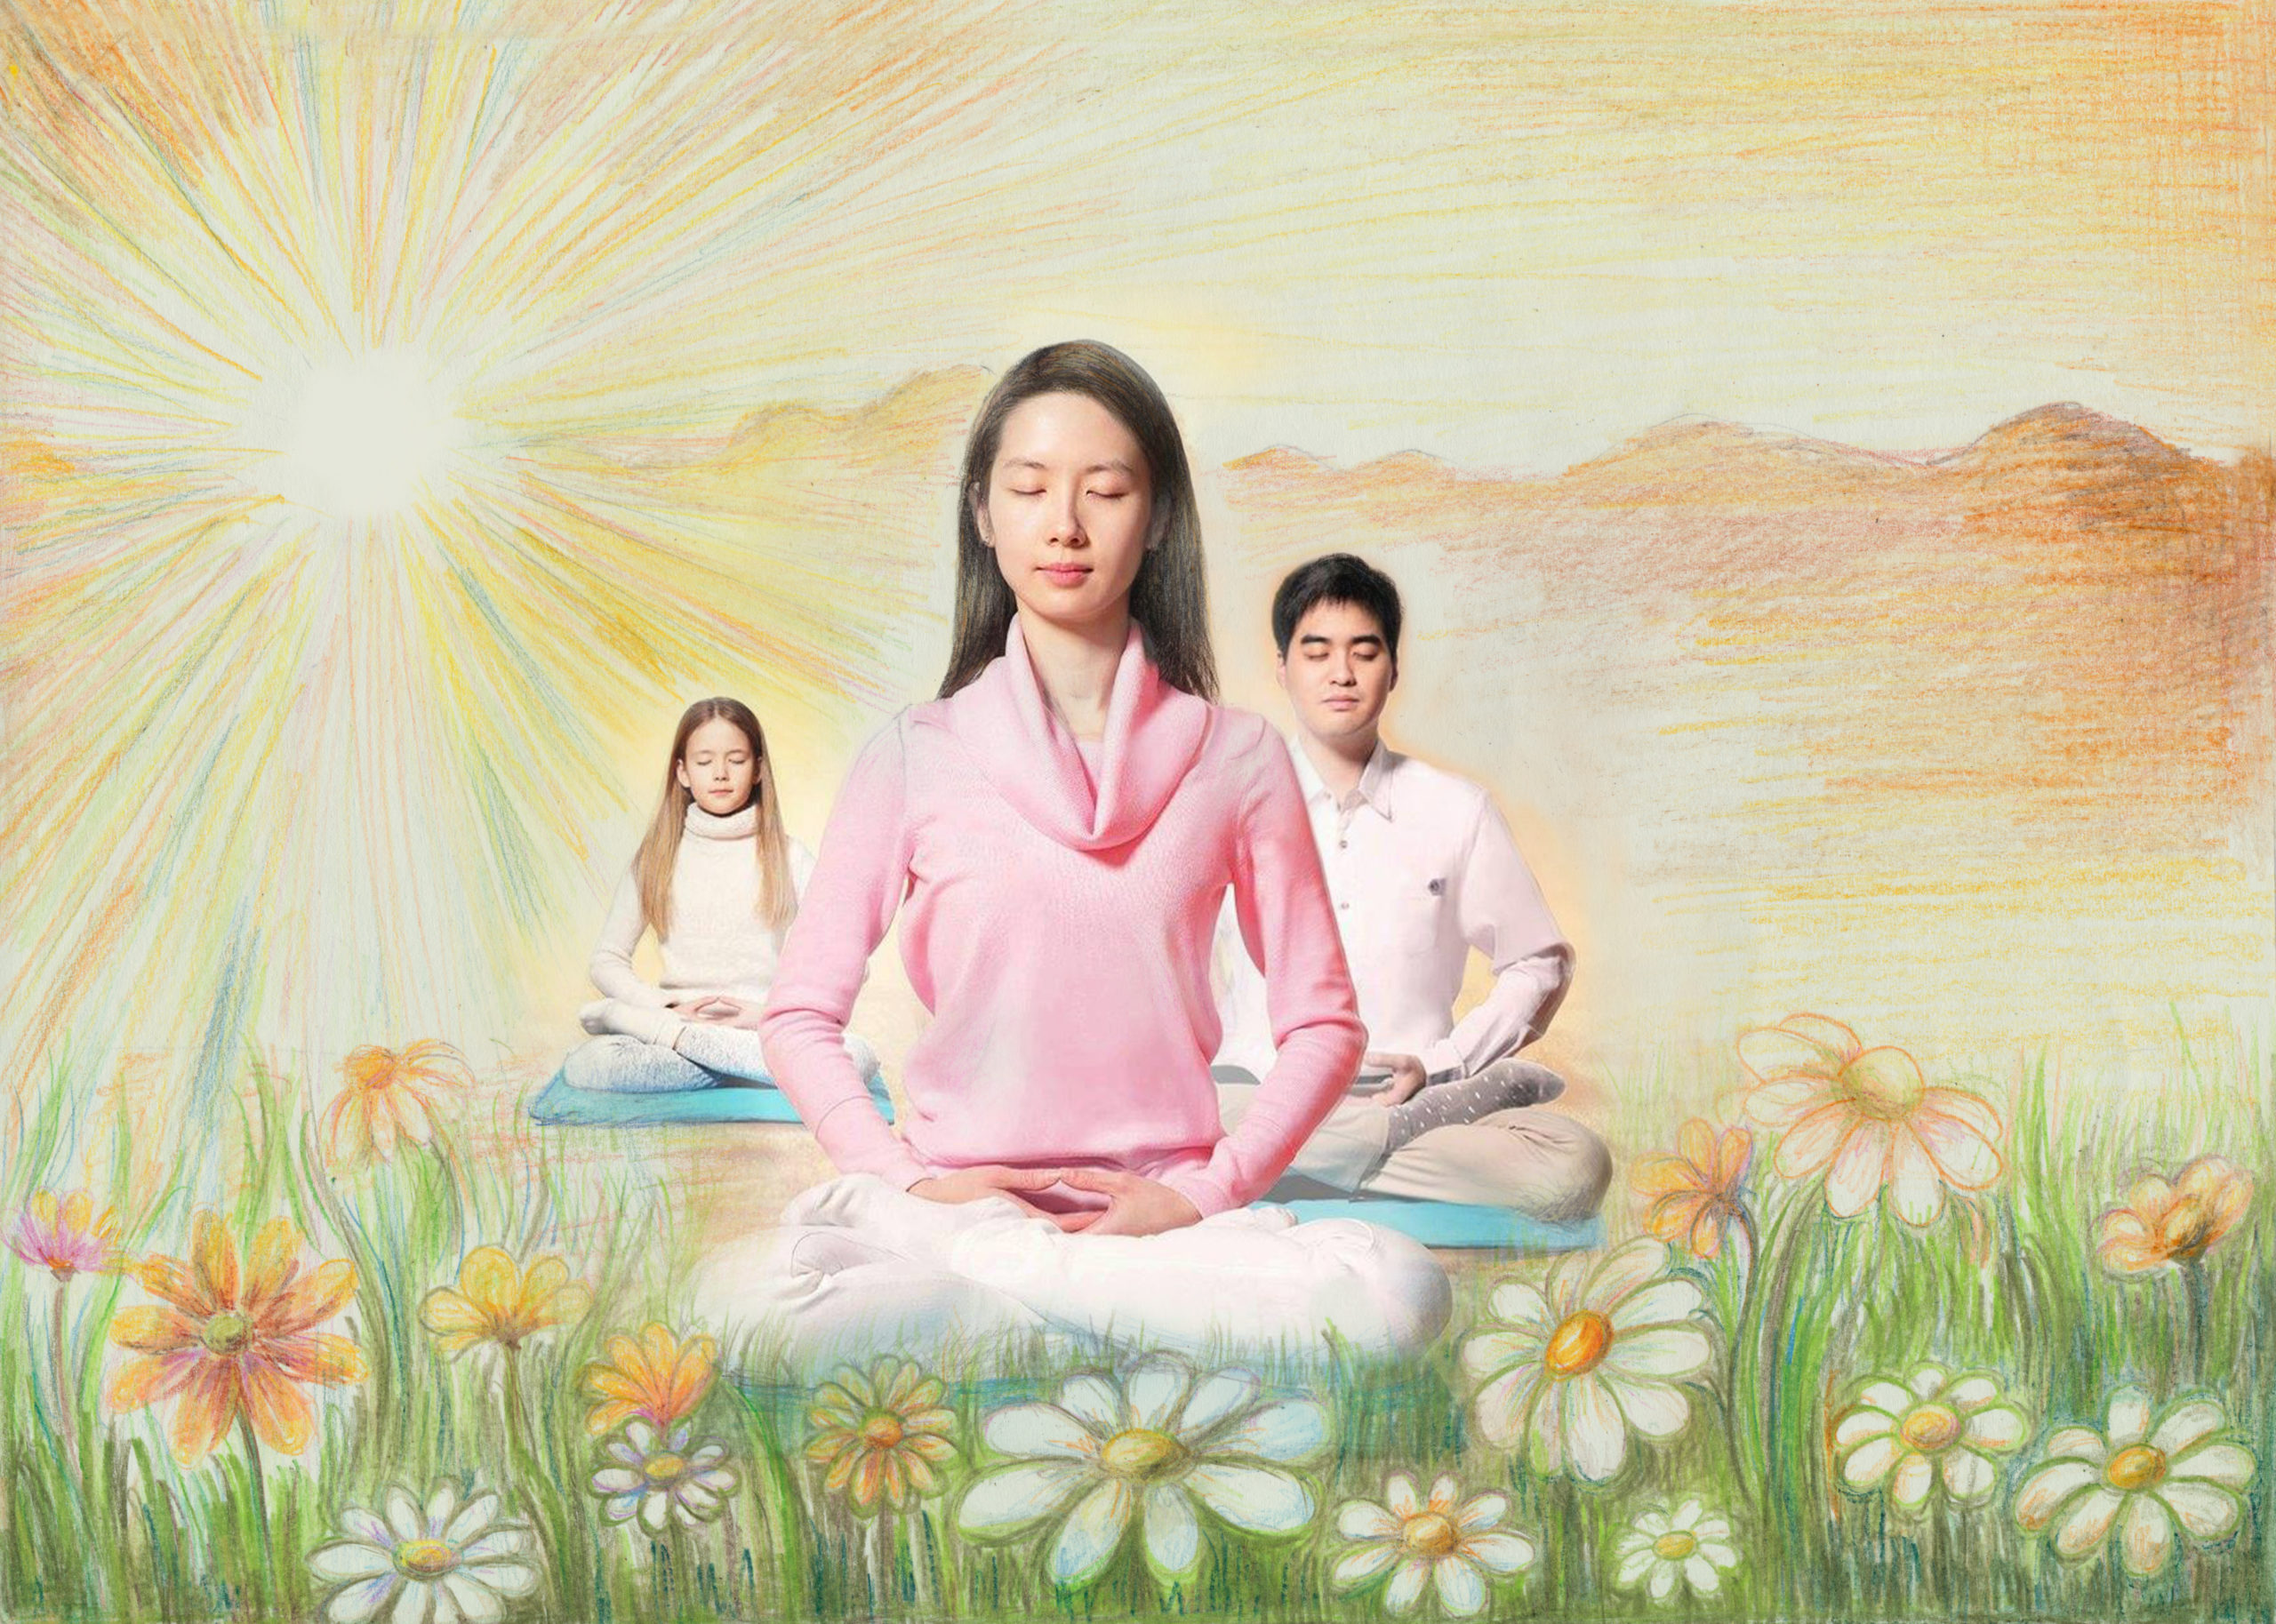 Falun Gong, an ancient Chinese meditation discipline, can serve as a mind-body and spiritual intervention for achieving inner peace and conflict resolution.